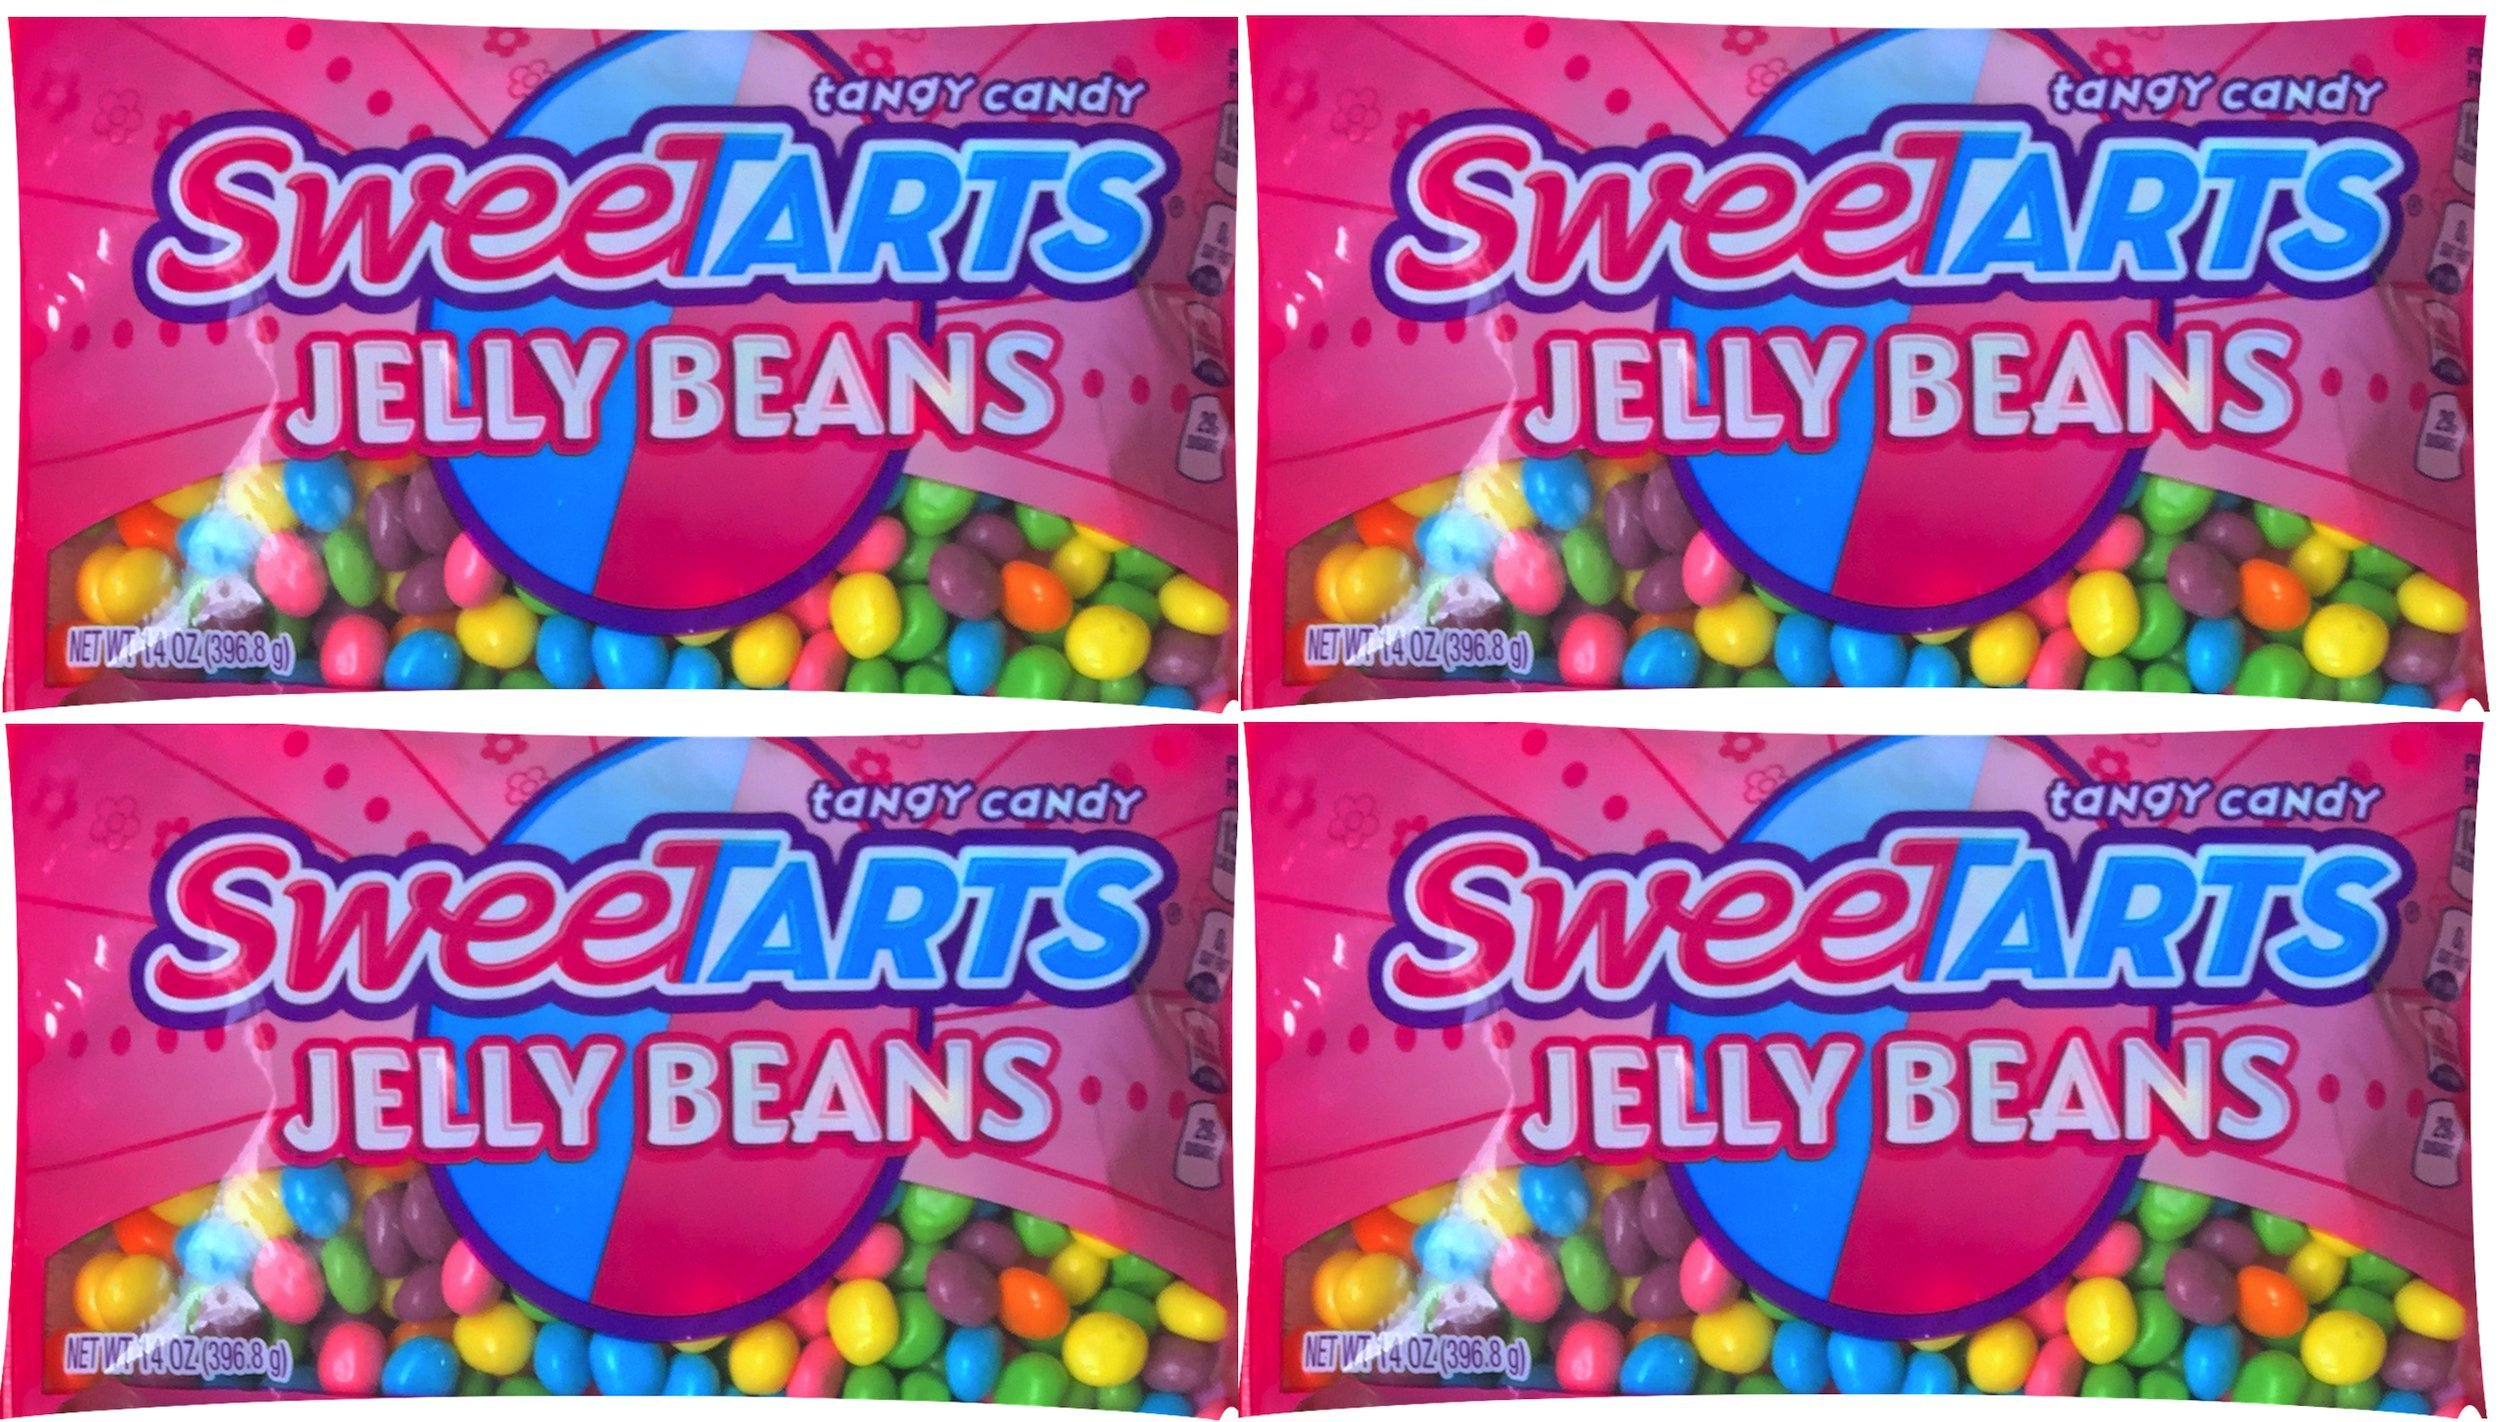 Sweetarts Easter Candy Jelly Beans Net Wt 14 Oz (pack of 4)